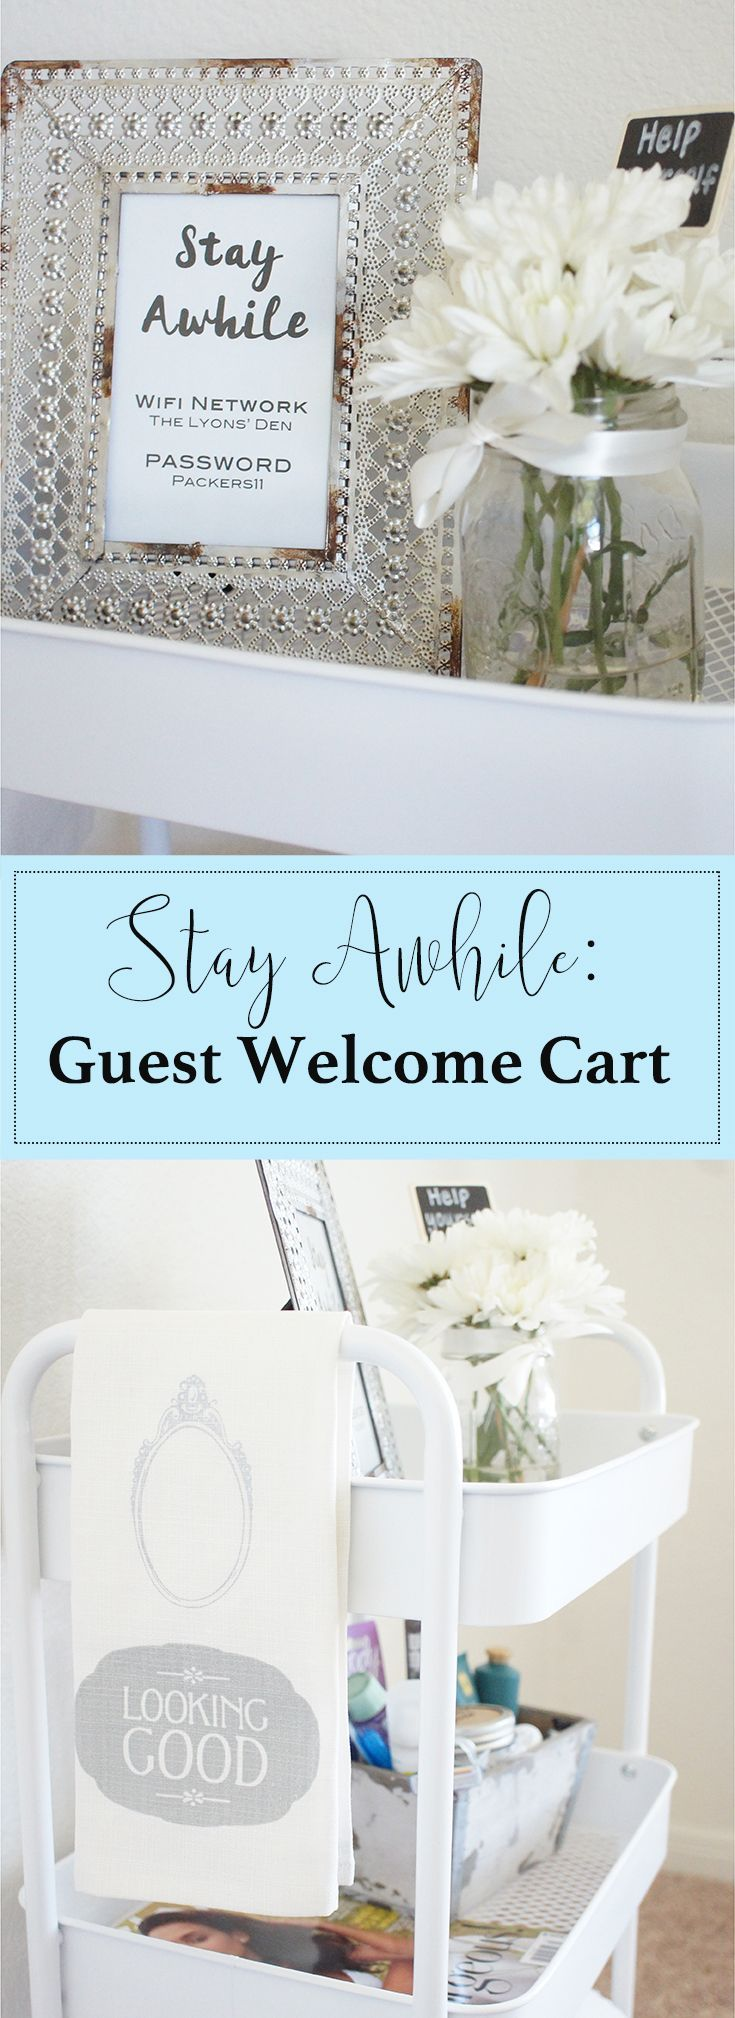 Stay Awhile: Guest Hospitality Cart   Hospitality, Organizations and ...